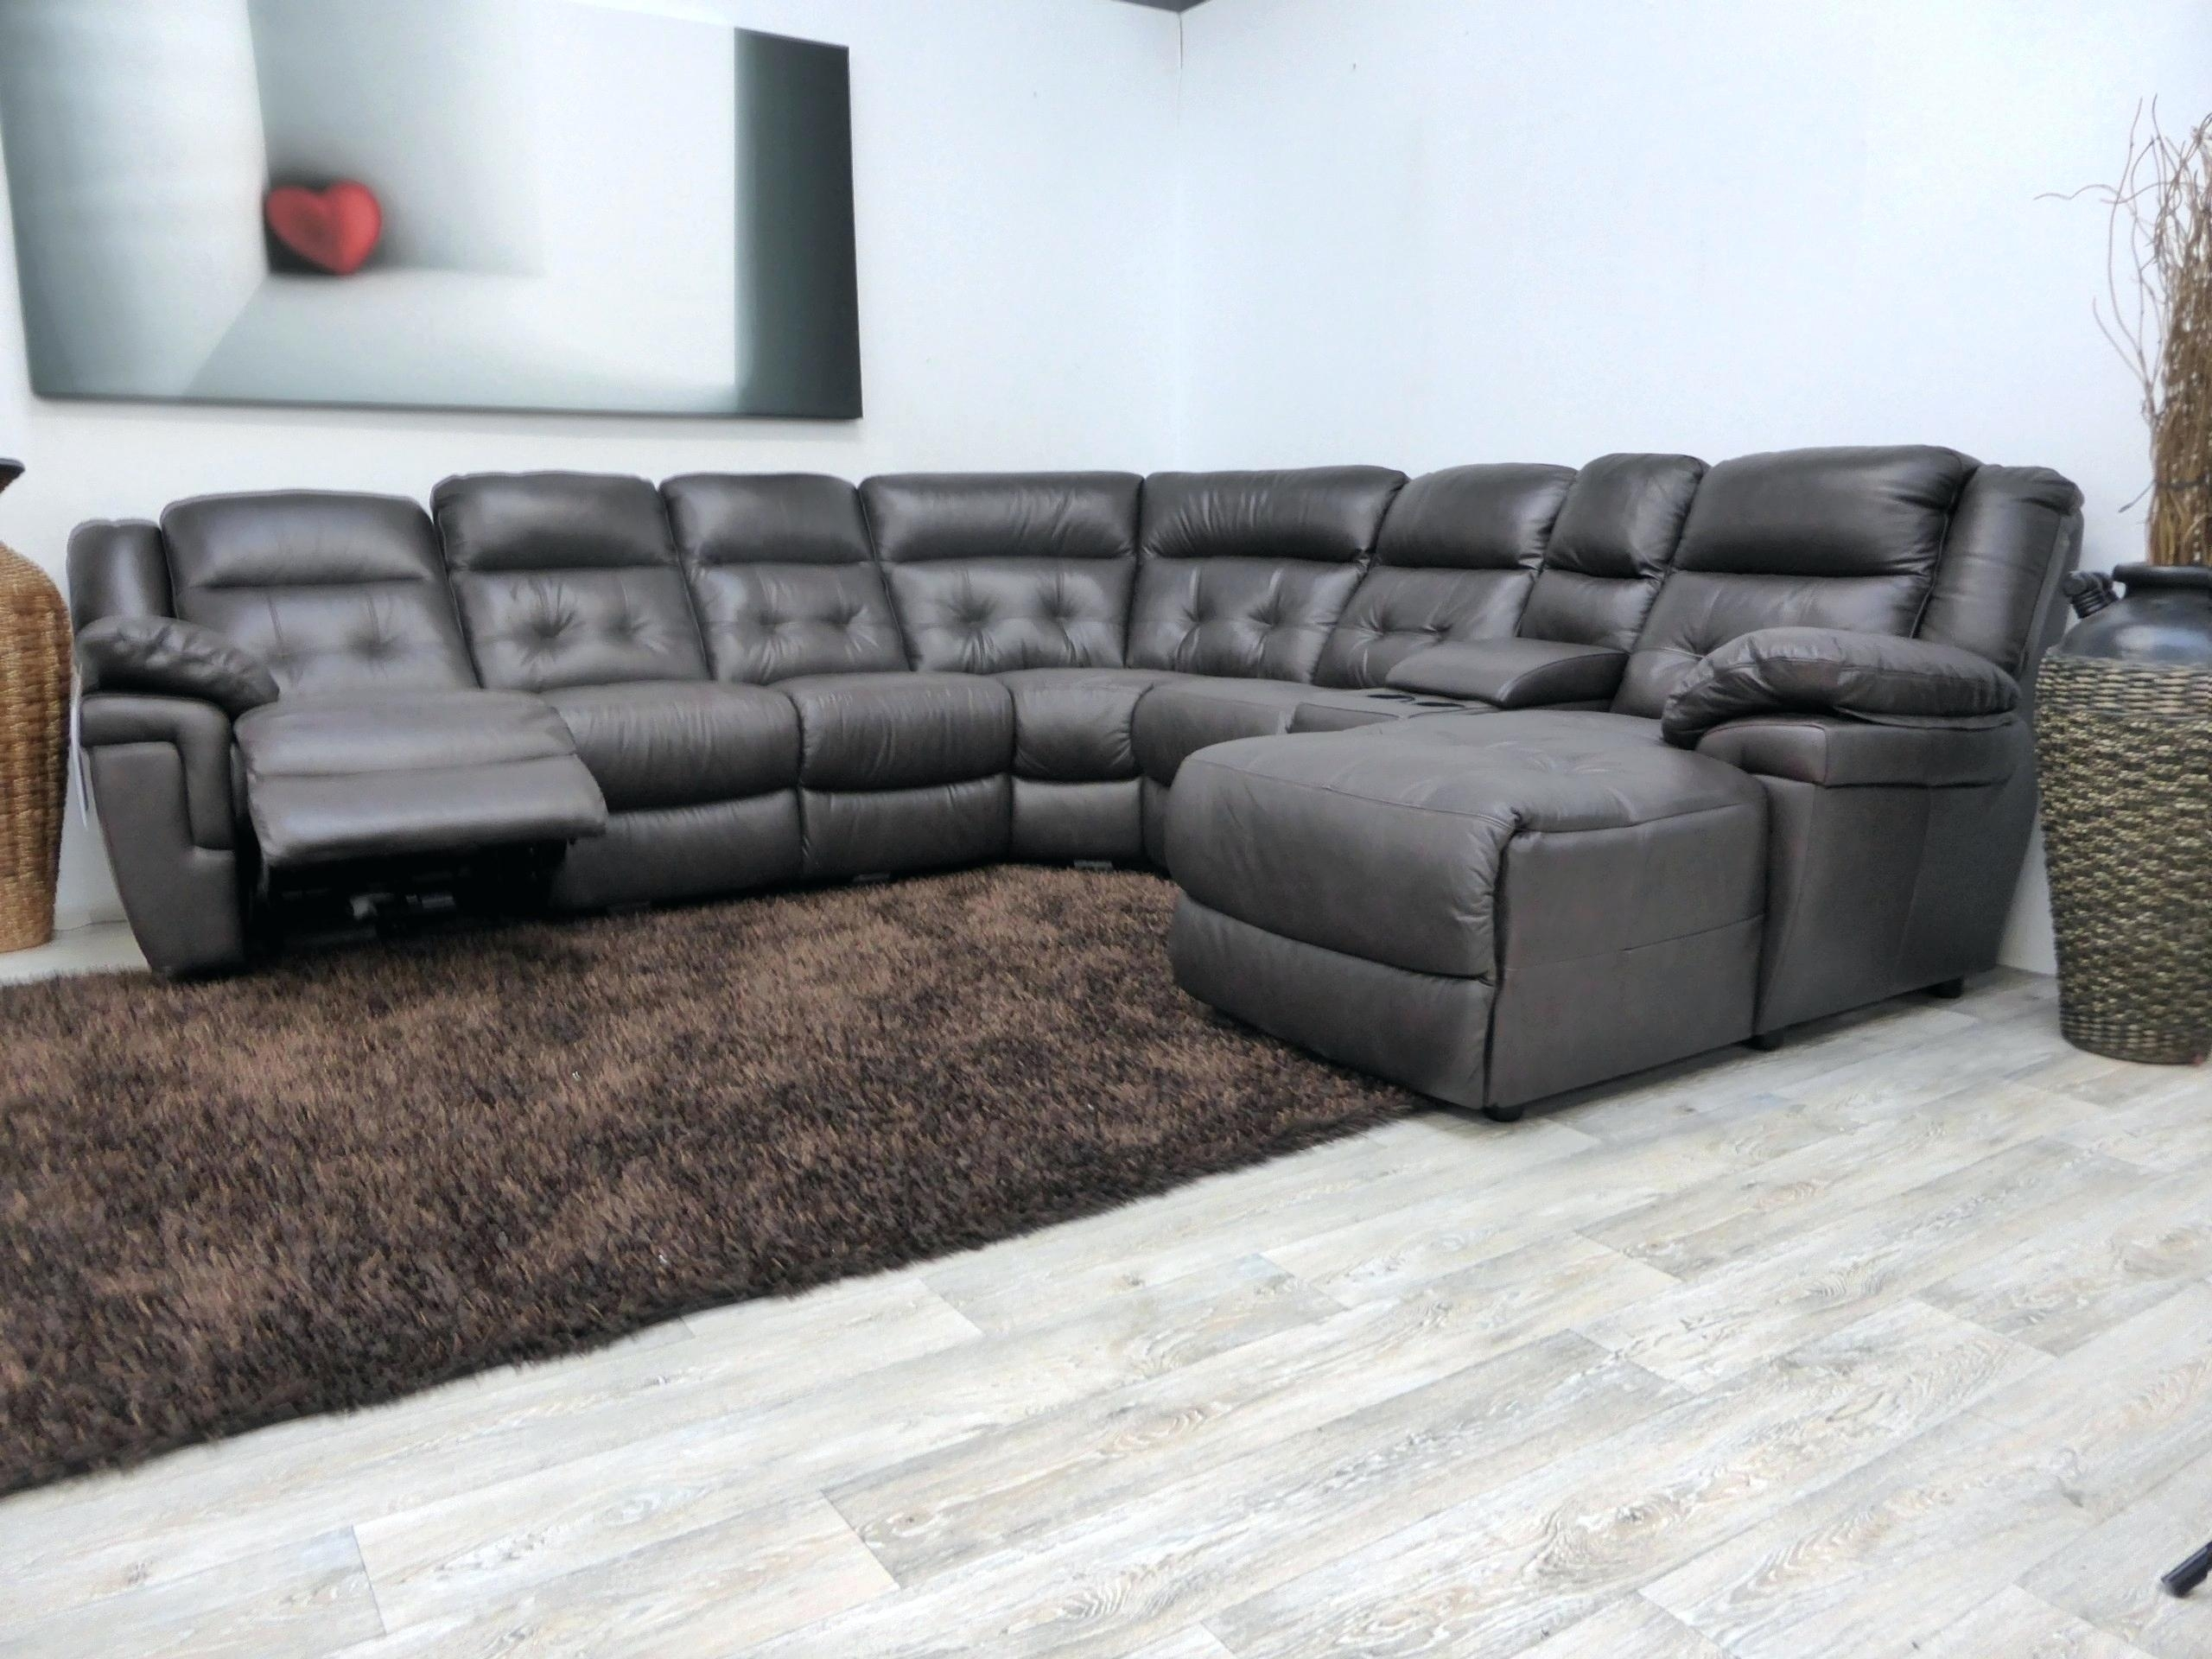 Affordable Sectional Sofa Beds Sofas Canada Sectionals Ottawa Pertaining To Ottawa Sectional Sofas (View 5 of 10)